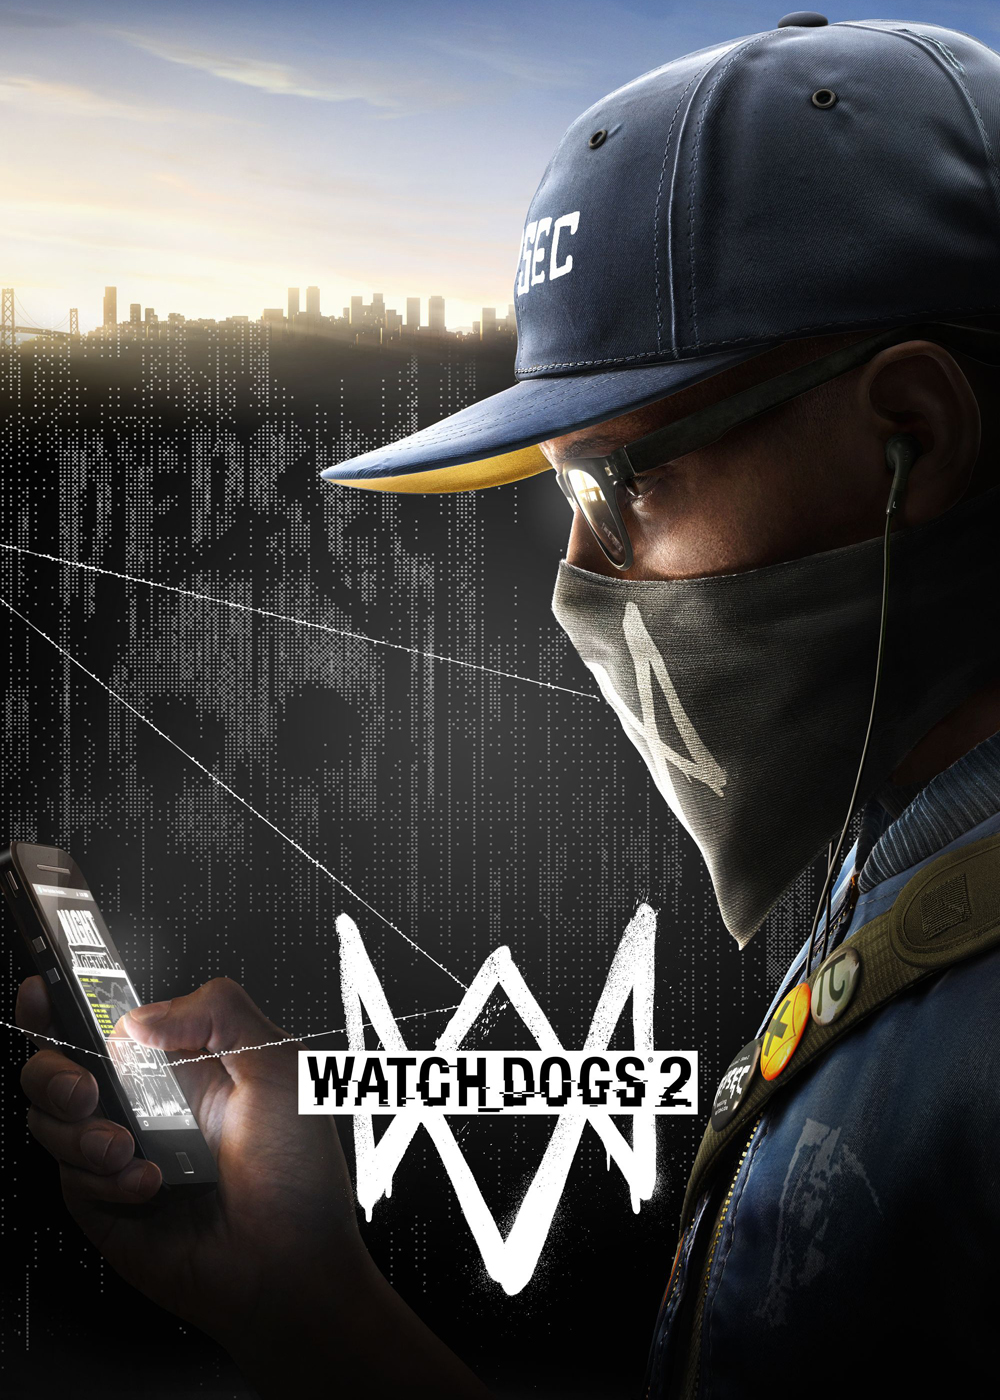 watch dogs 2 patch 1.09 download pc